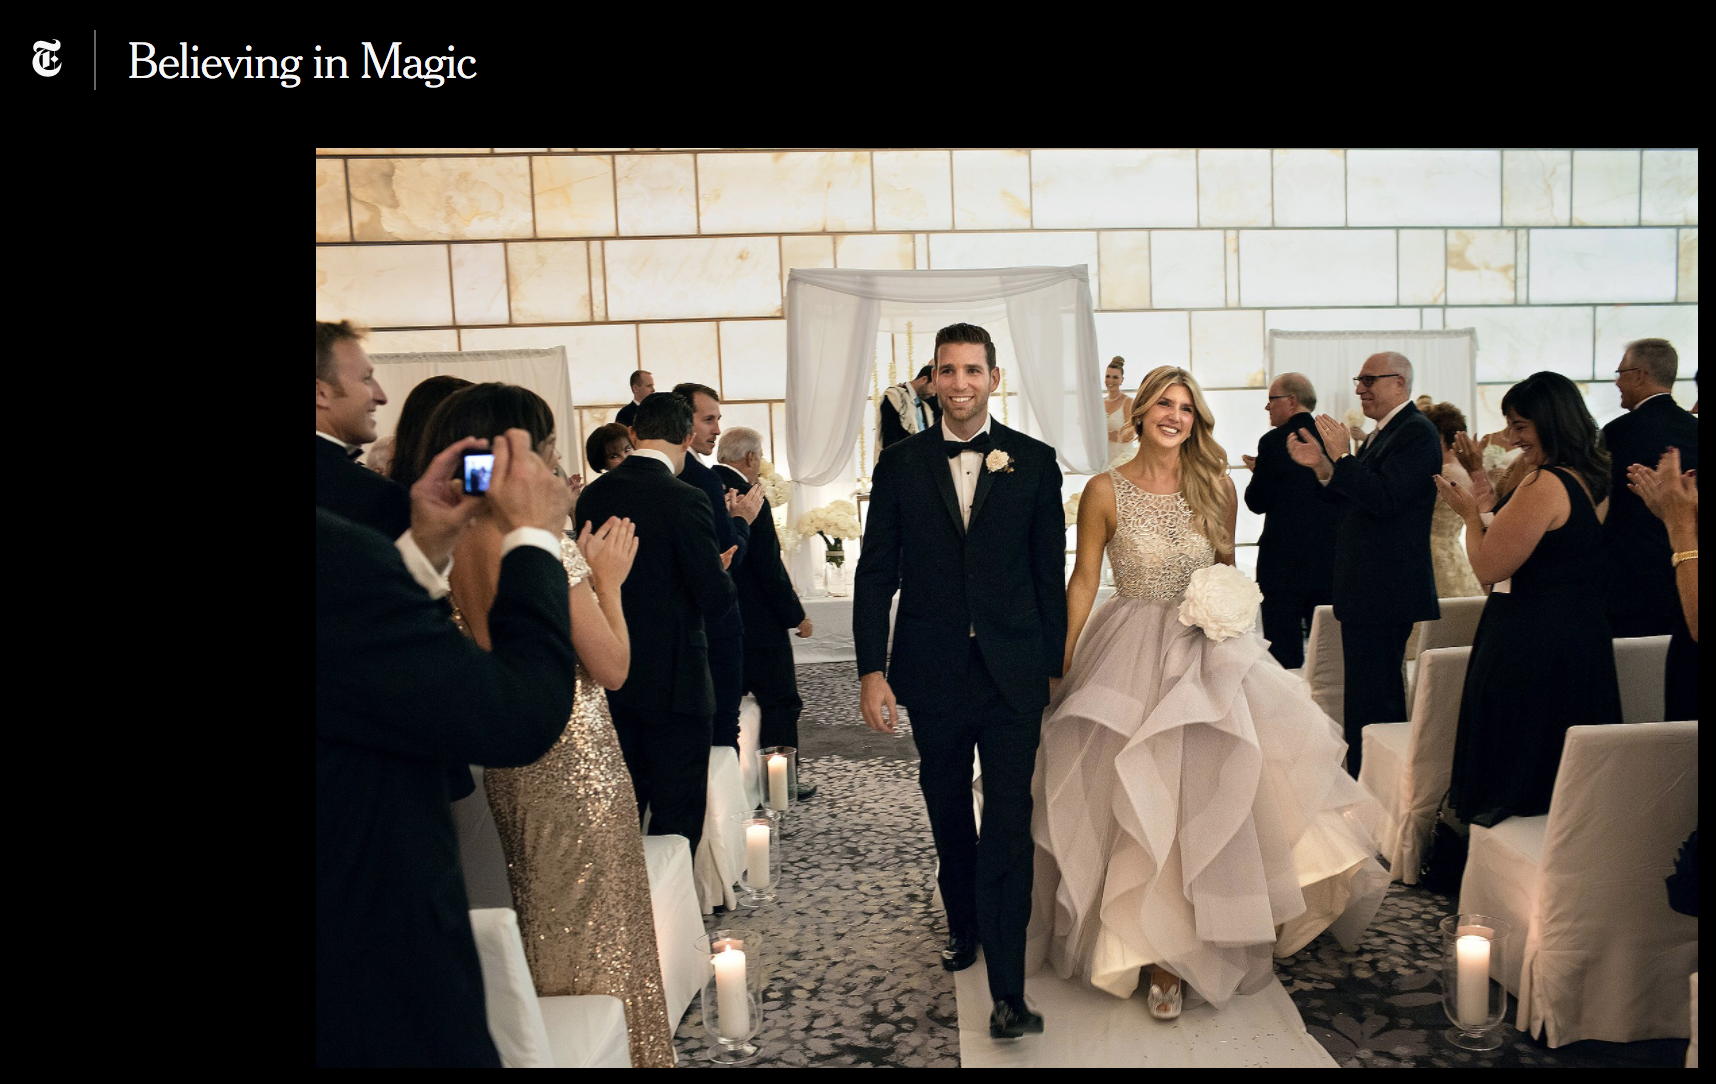 A Magician Marries His Assistant   from The New York Times September 2015